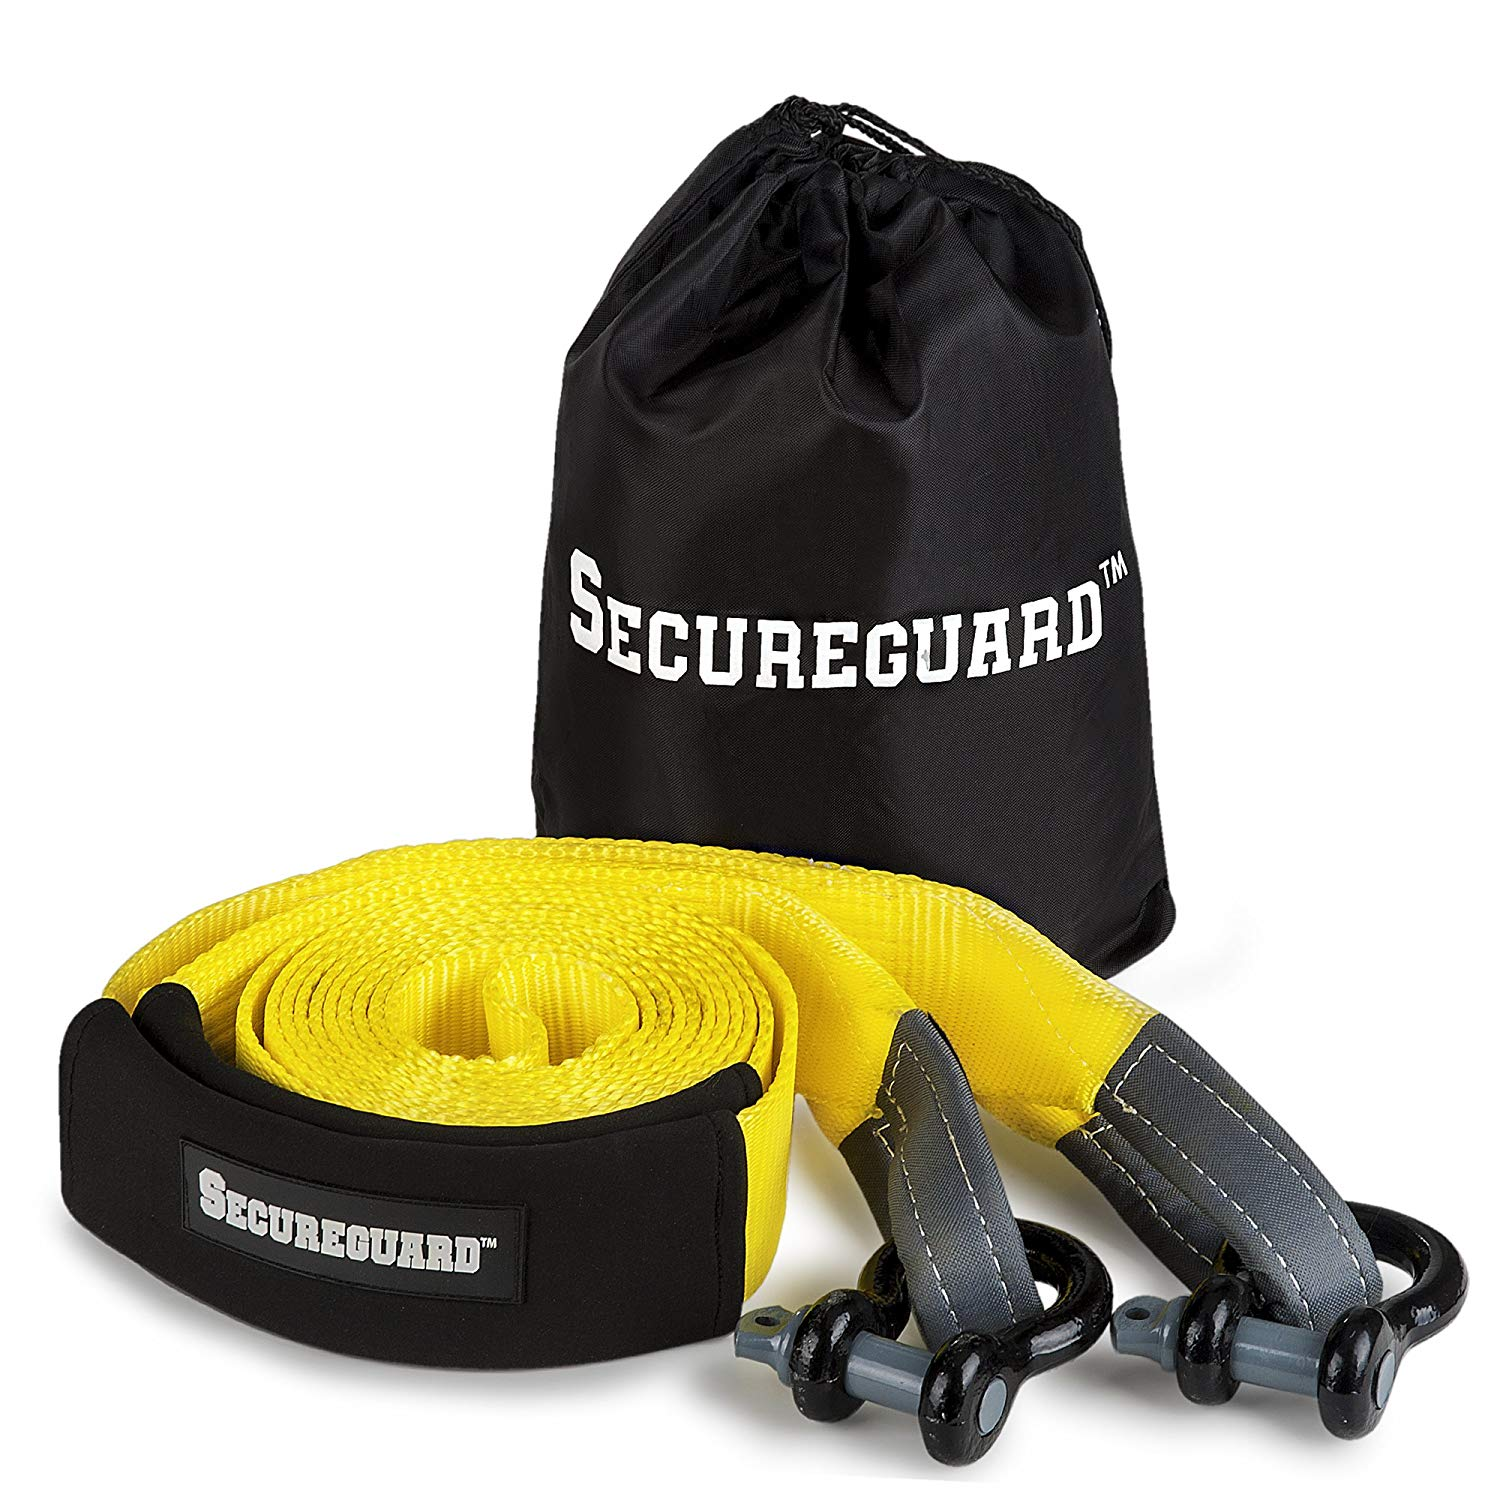 Cheap Tow Rope Heavy Duty Find Deals On Line At Ski Harness Get Quotations Secureguard Extra Strap Rated For 30000lbs 20 Feet Long